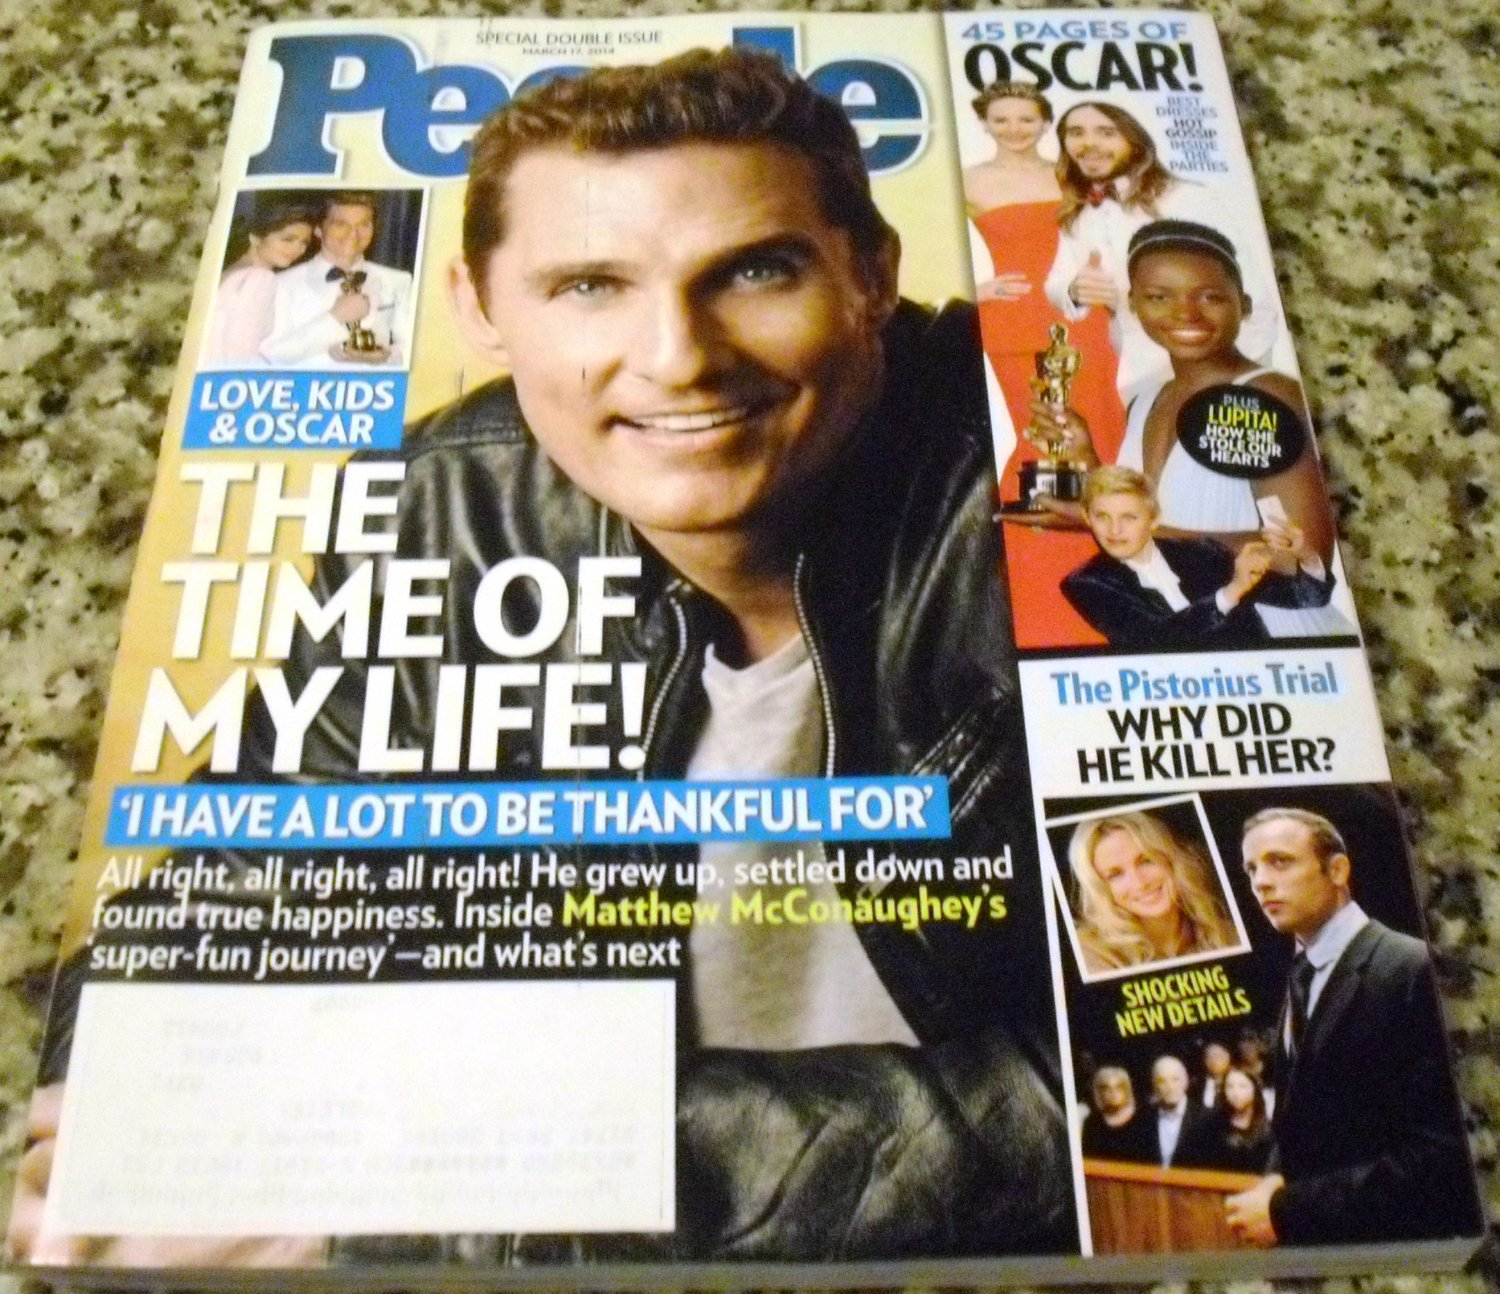 PEOPLE Magazine March 17, 2014 The Time of My Life!